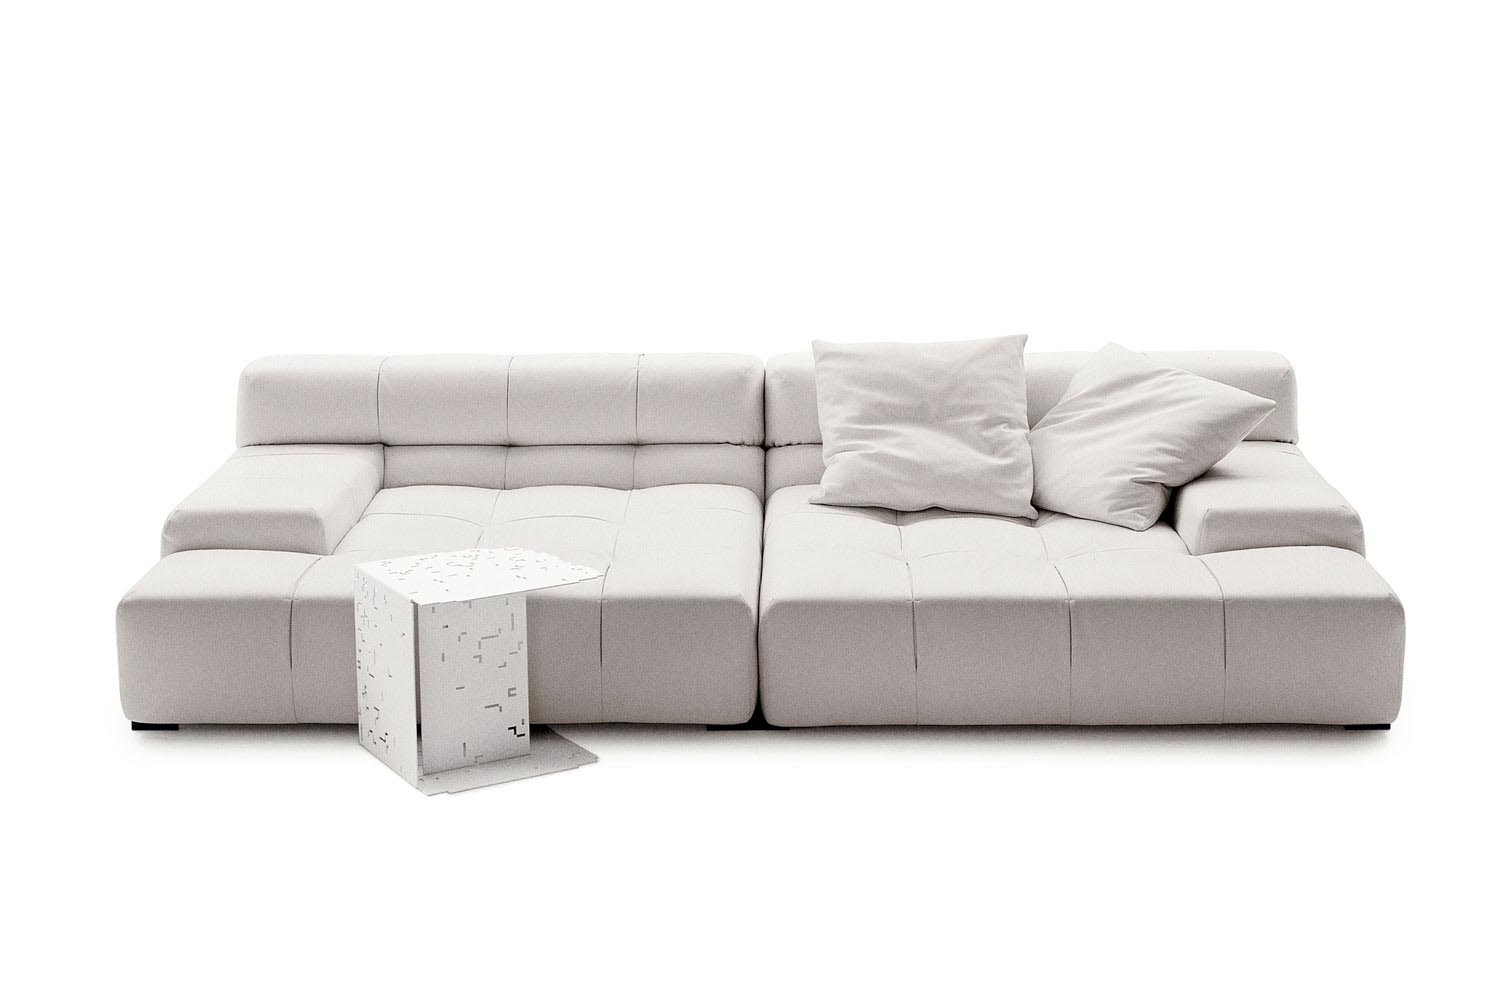 tufty time sofa replica australia sofas small living rooms leather by patricia urquiola for b andb